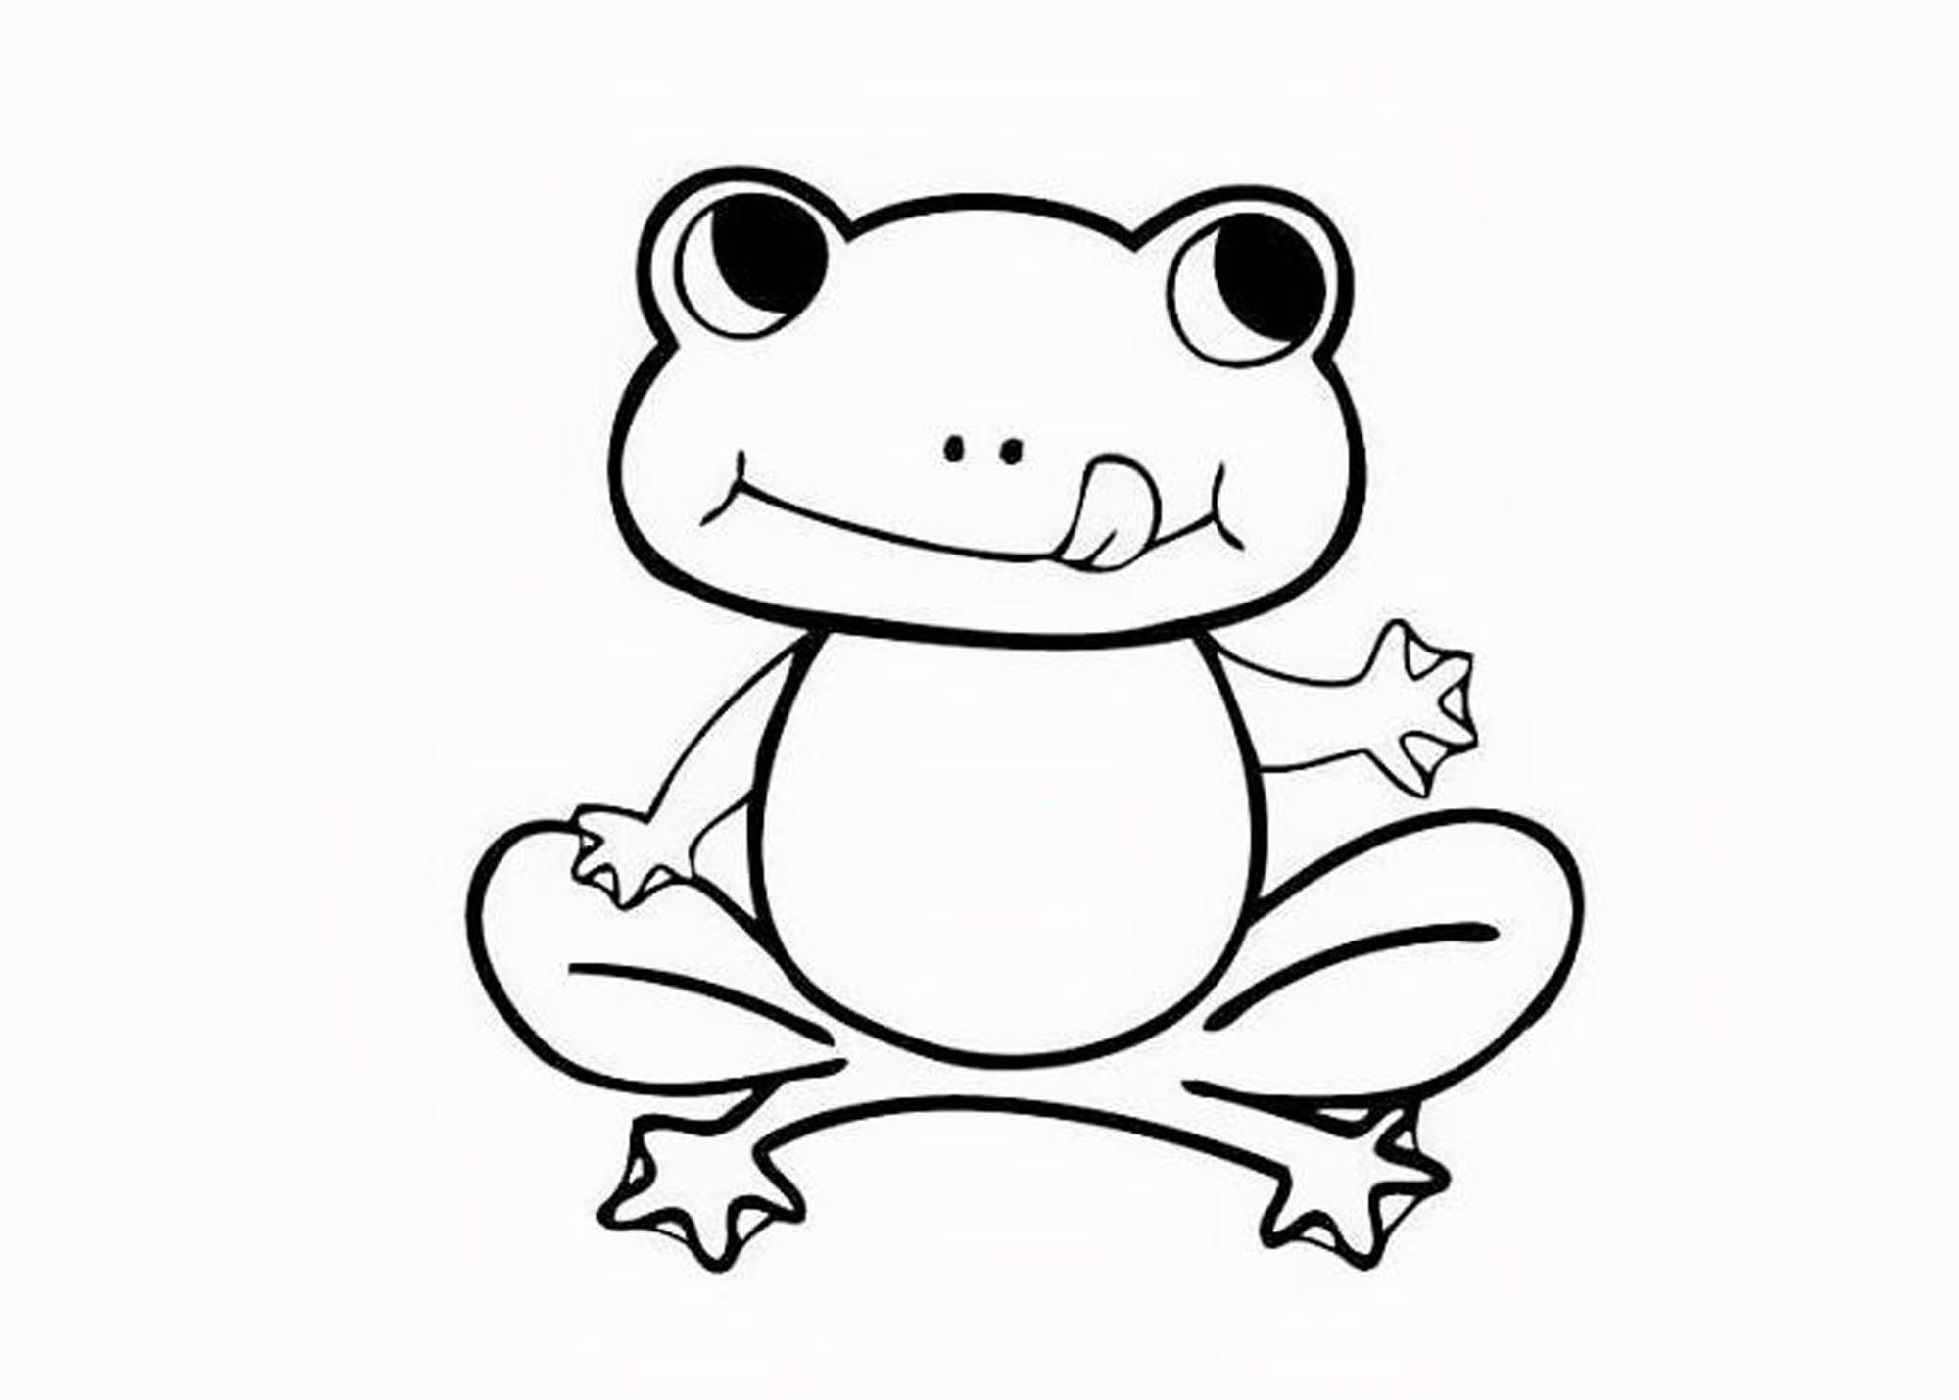 Cute Frog Coloring Sheets Frog Coloring Pages Animal Coloring Pages Coloring Pages